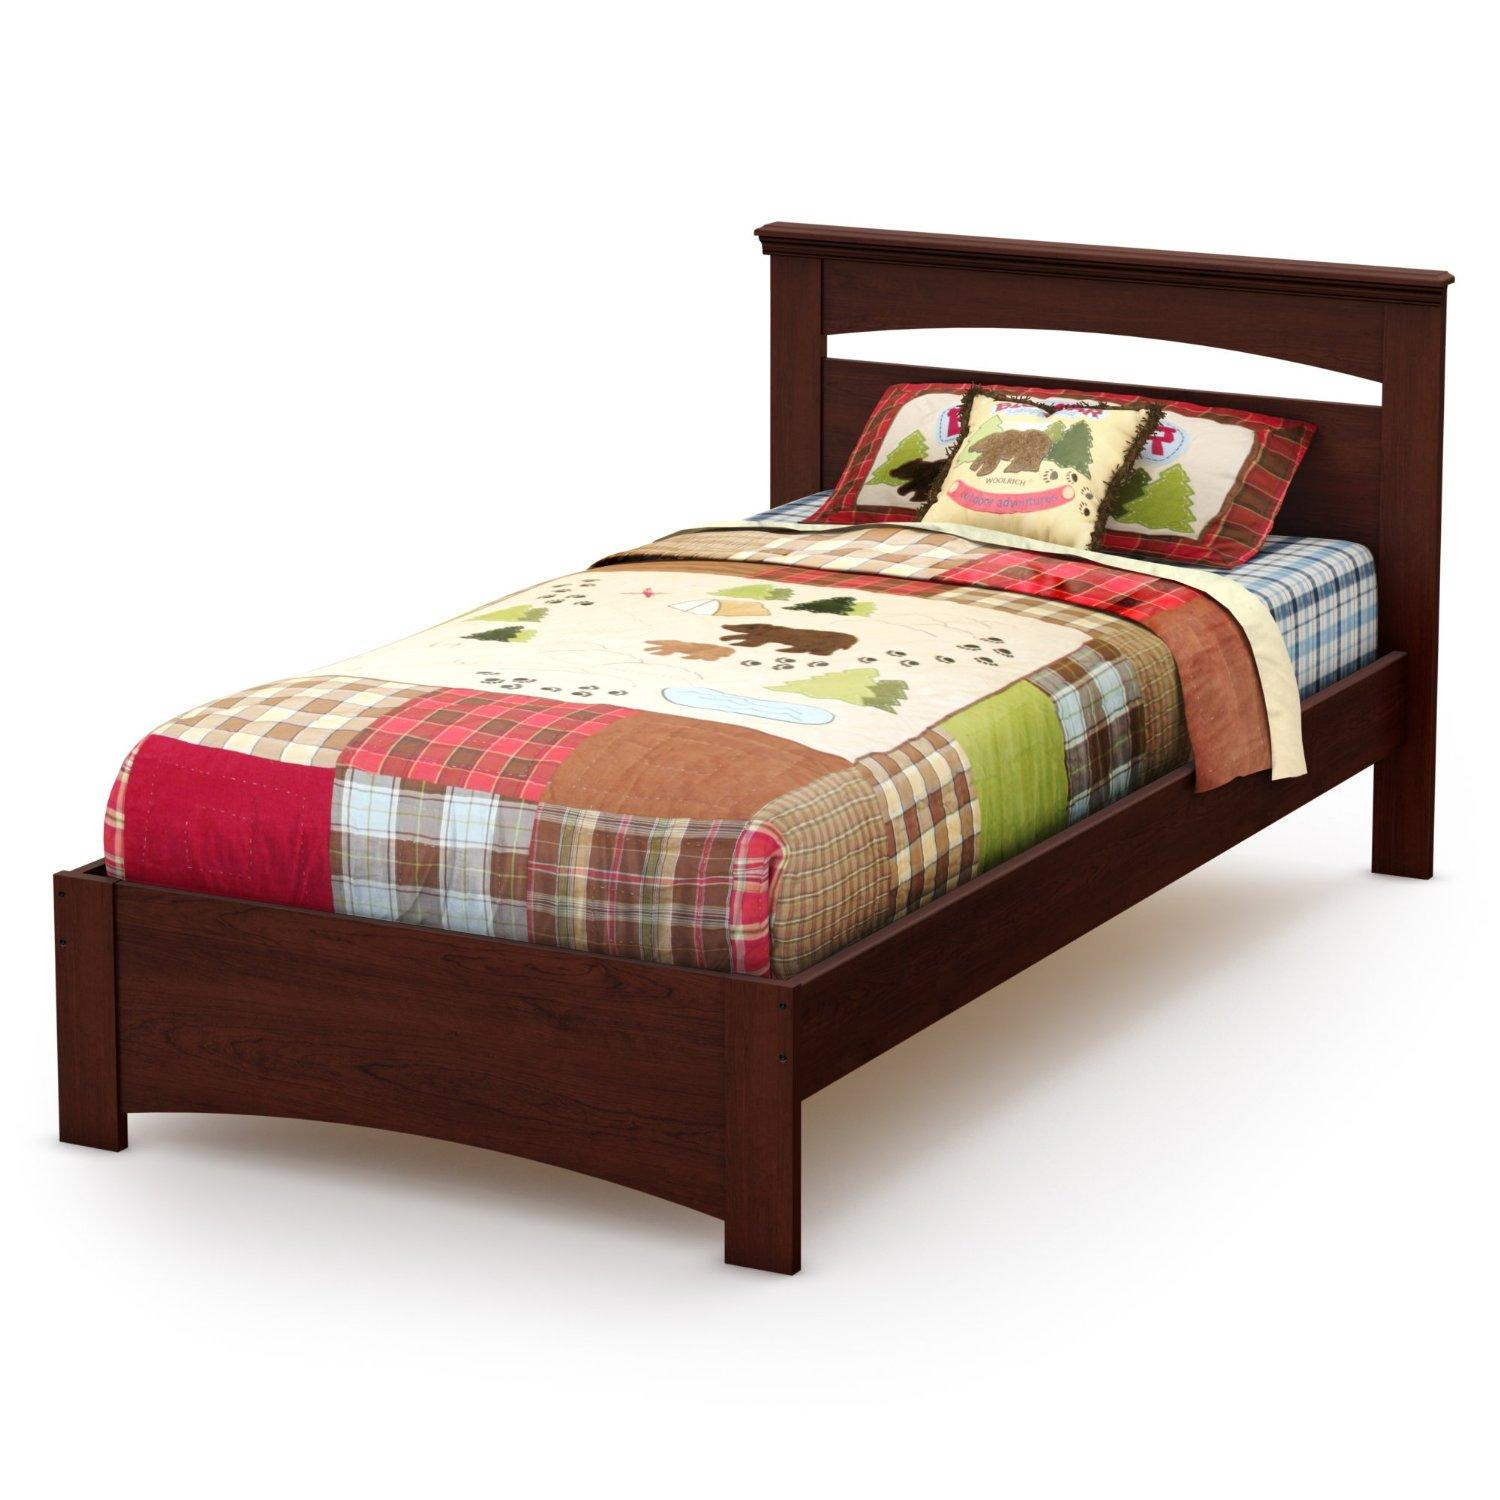 South Shore Libra Twin Bed Set By Oj Commerce 184 56